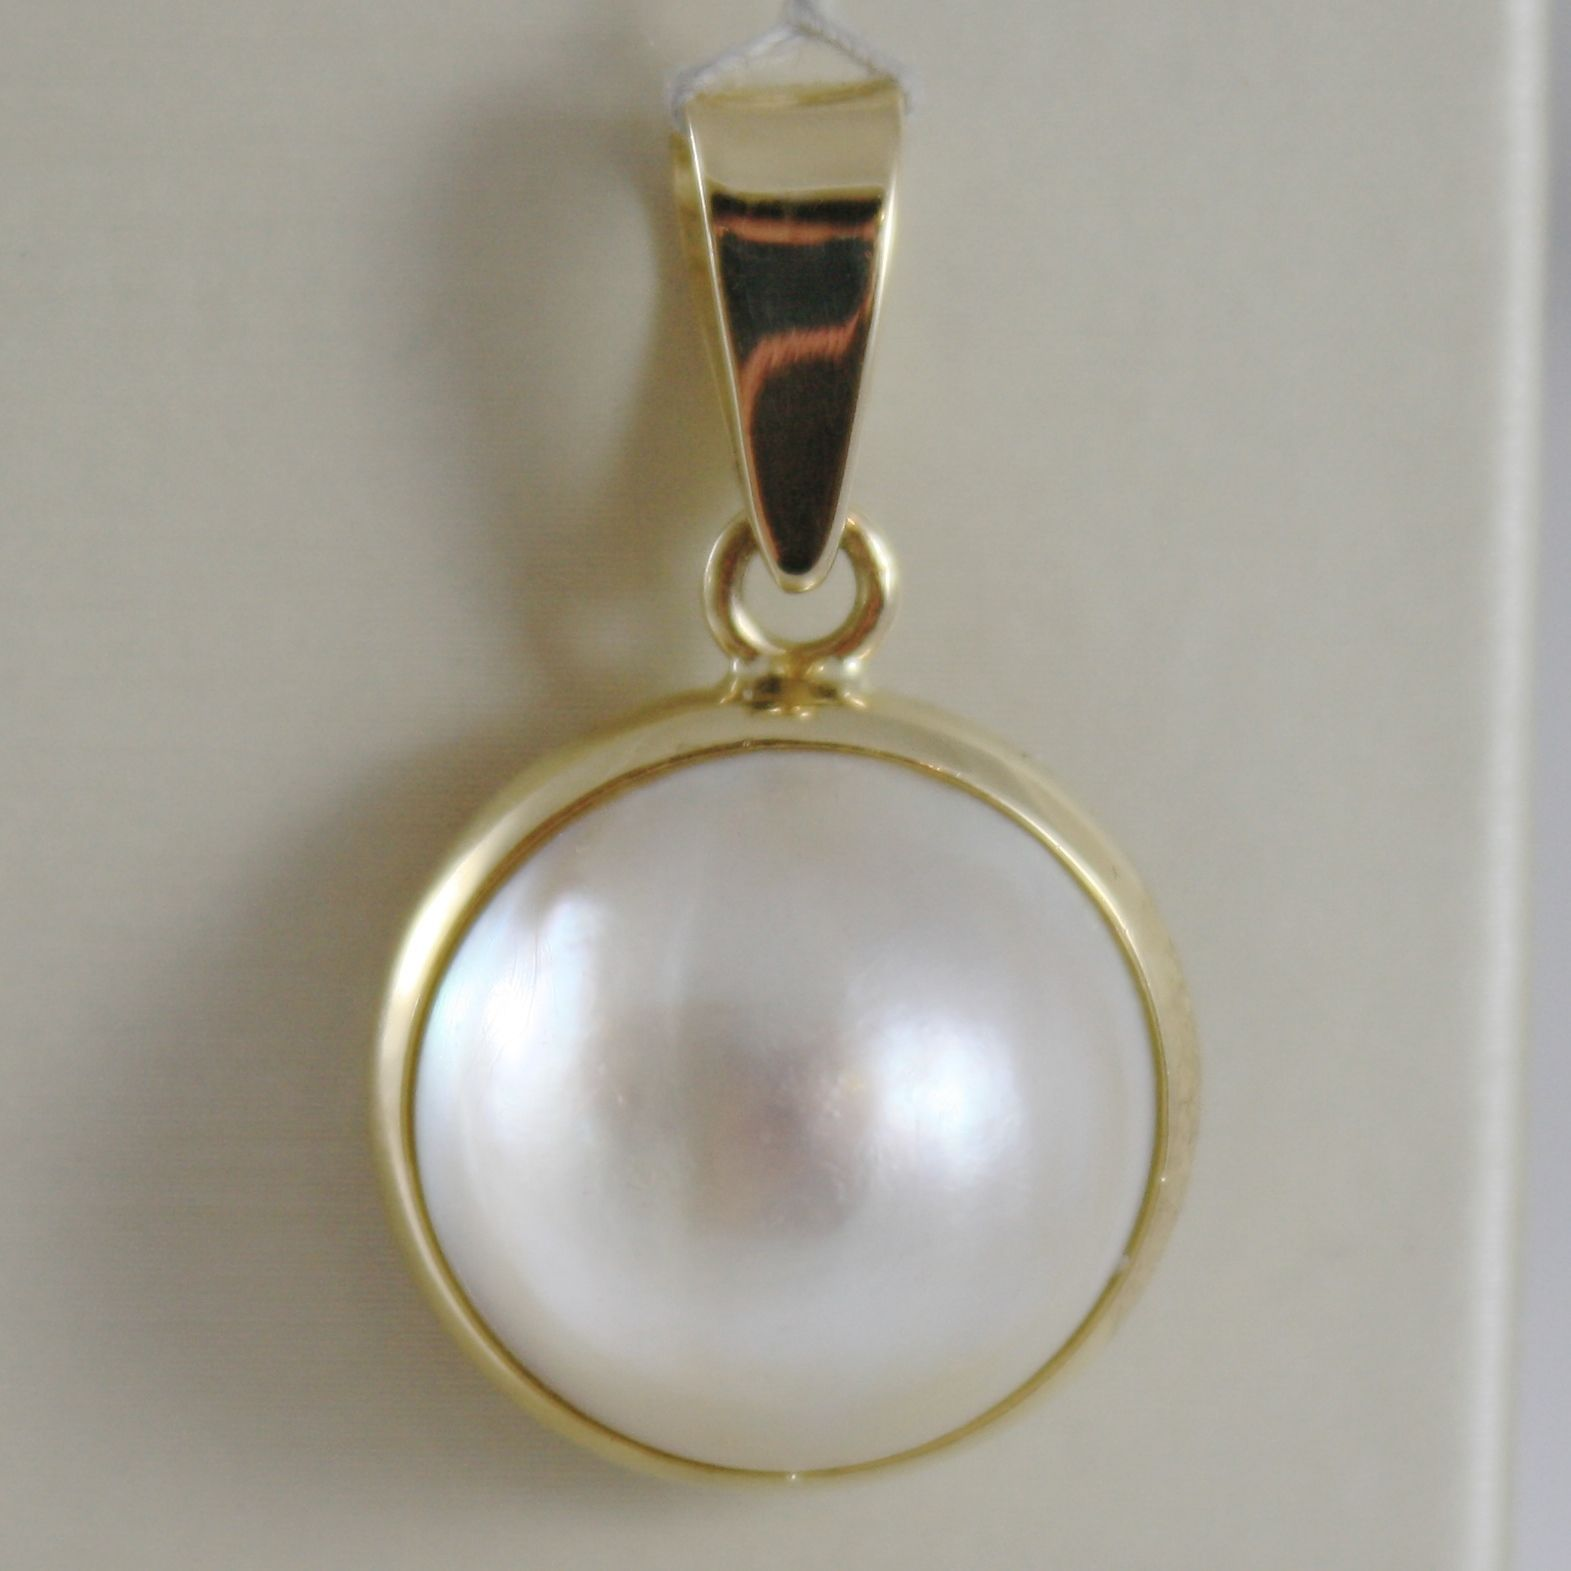 SOLID 18K YELLOW GOLD PENDANT CHARM BIG ROUND CABOCHON WHITE PEARL MADE IN ITALY